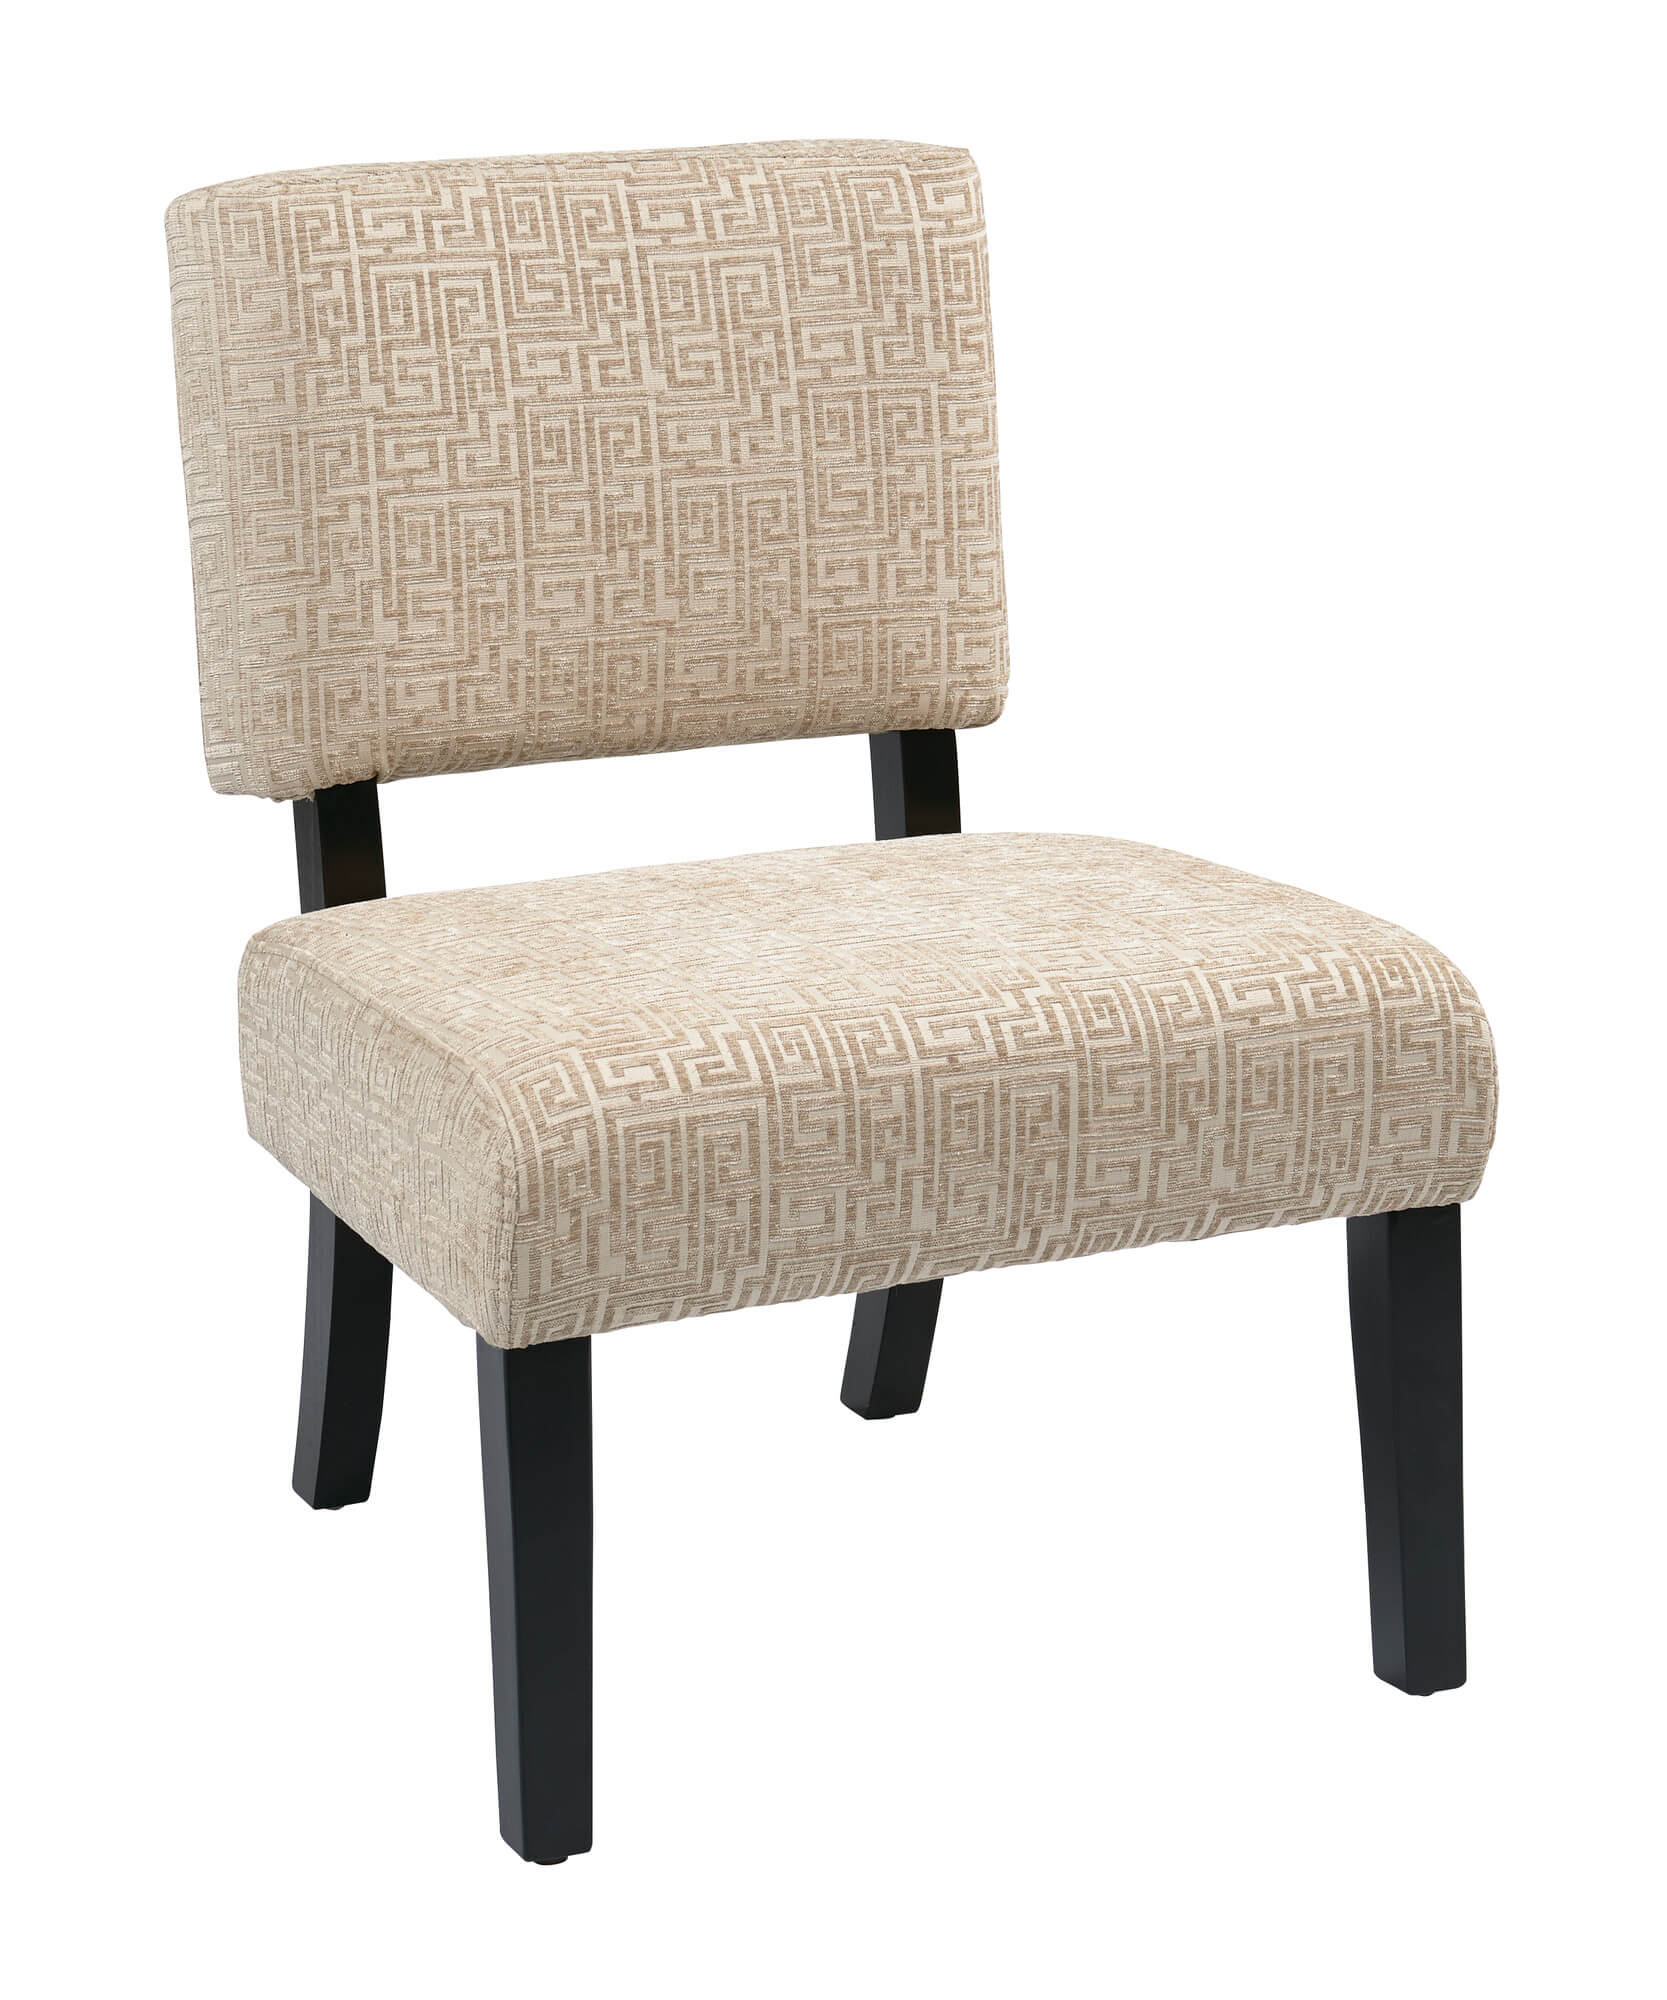 This accent chair is similar in design to other accent chairs in this gallery with a different upholstery pattern. This one with with its lighter fabric pattern would work well in many color schemes because it's more neutral